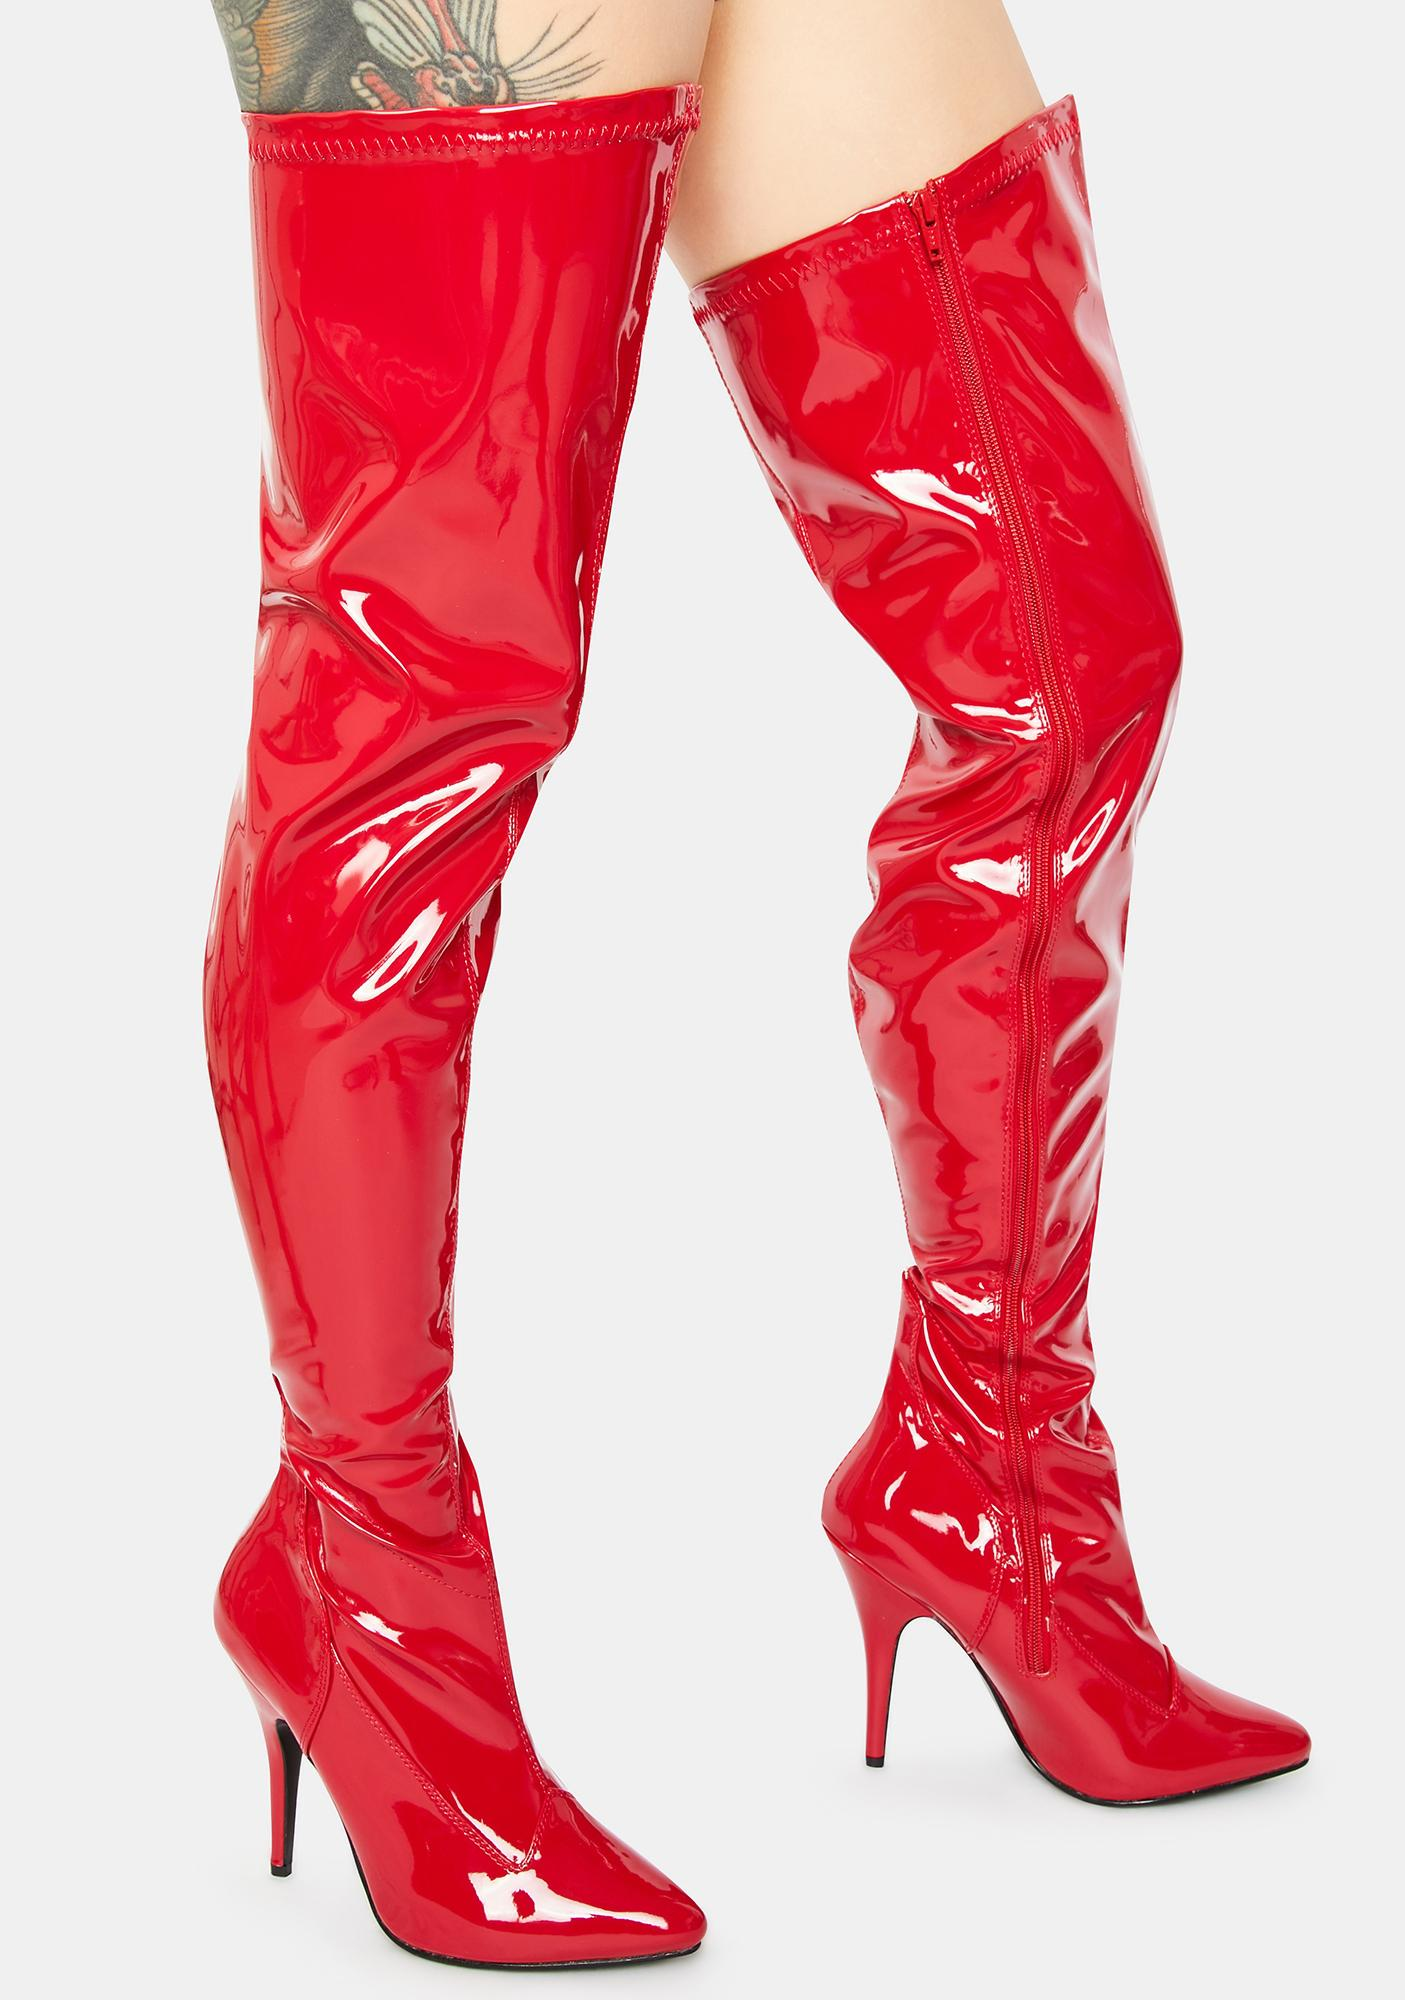 Pleaser What I Deserve Patent Thigh High Boots